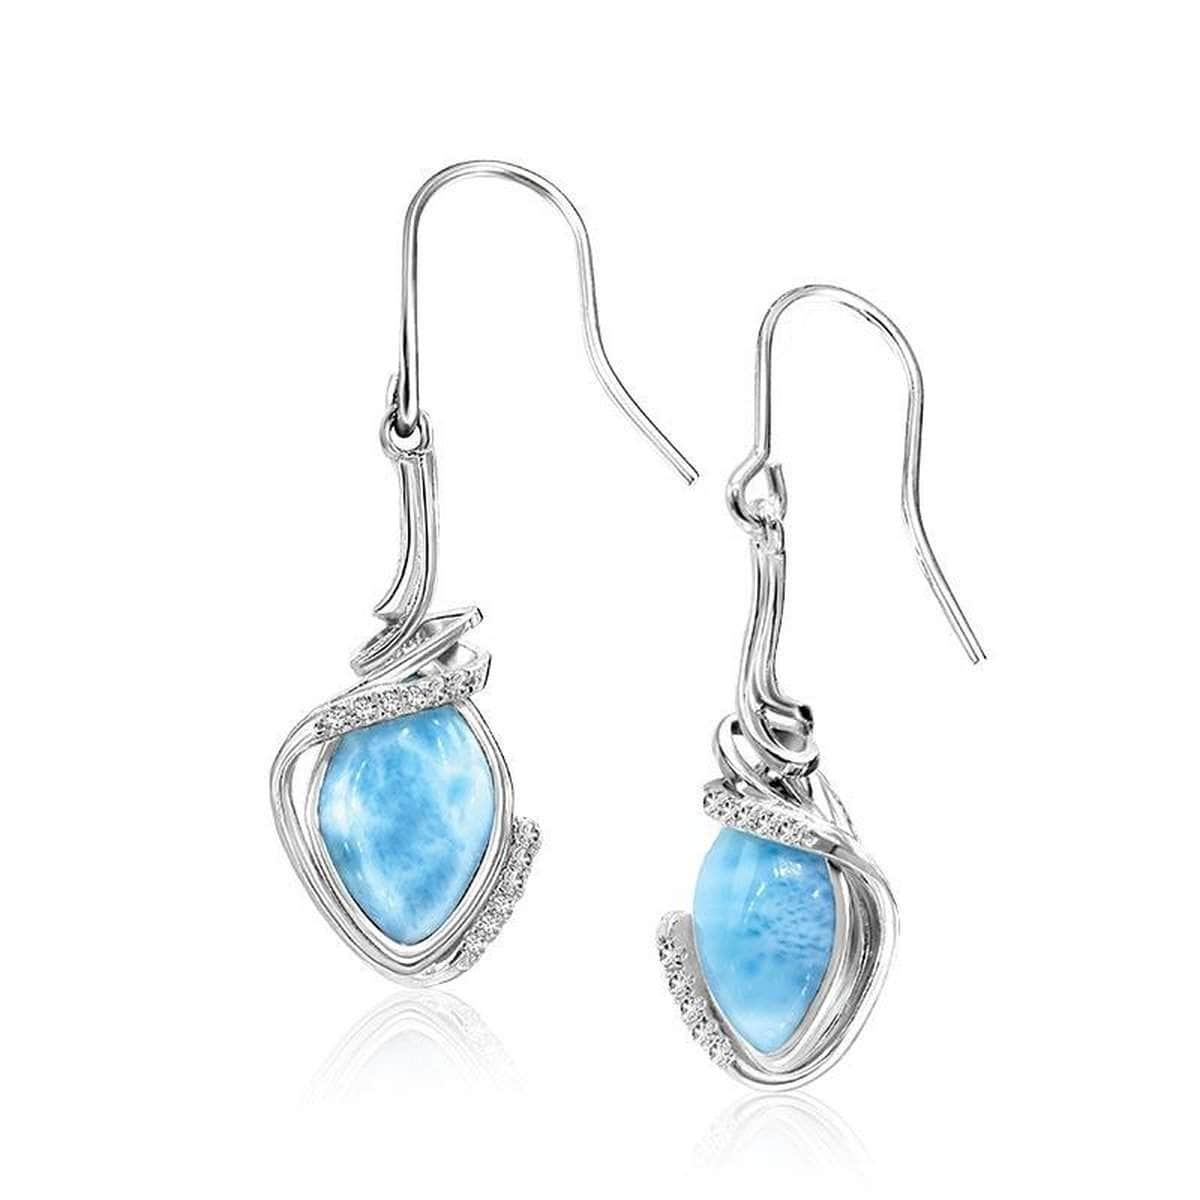 Calypso White Sapphire Earrings - Ecaly00-00-Marahlago Larimar-Renee Taylor Gallery